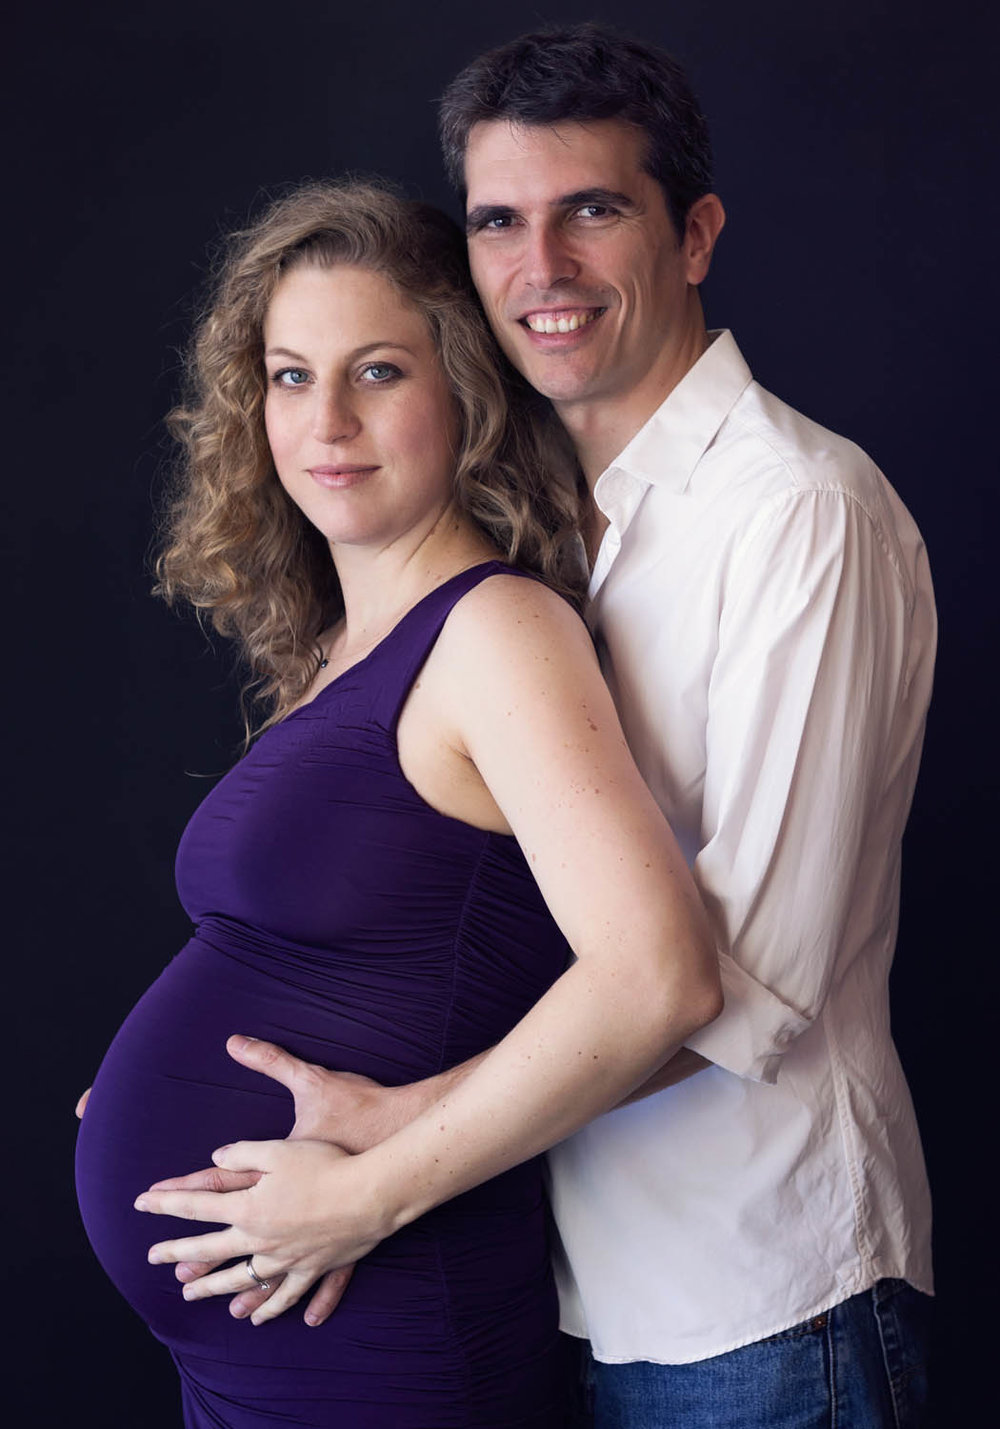 maternity pregnancy portrait photography sydney